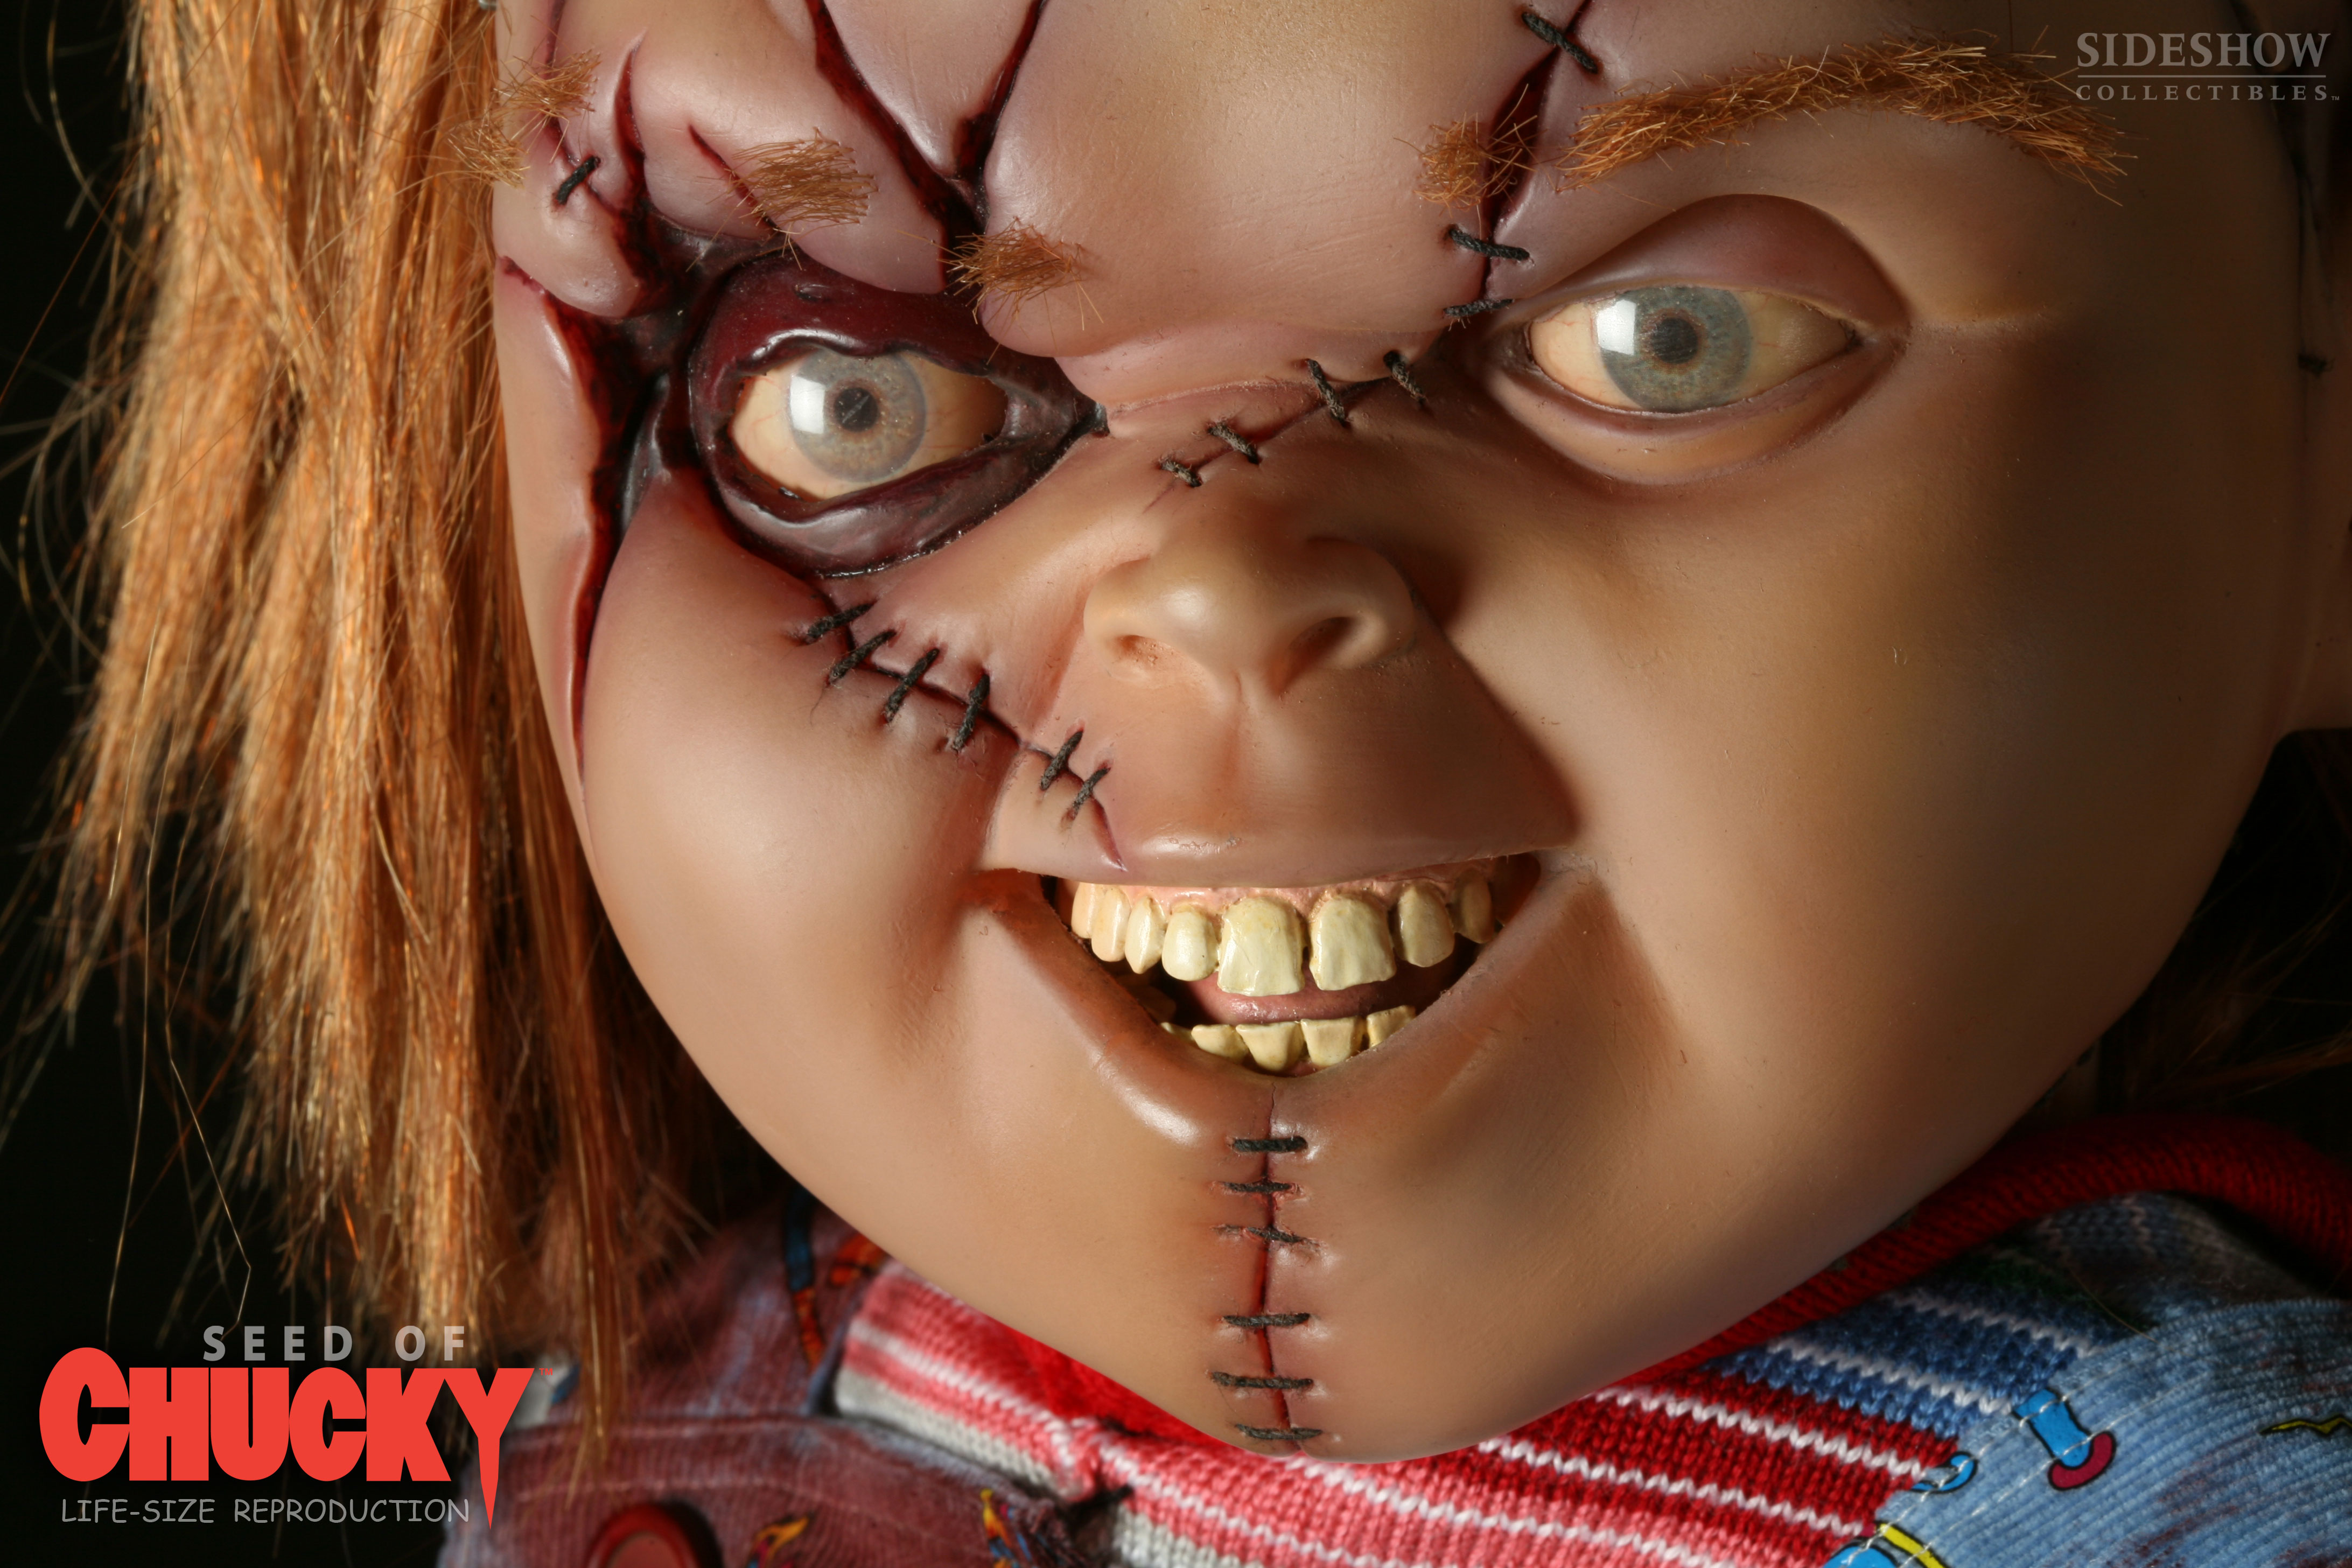 Childs Play Wallpaper